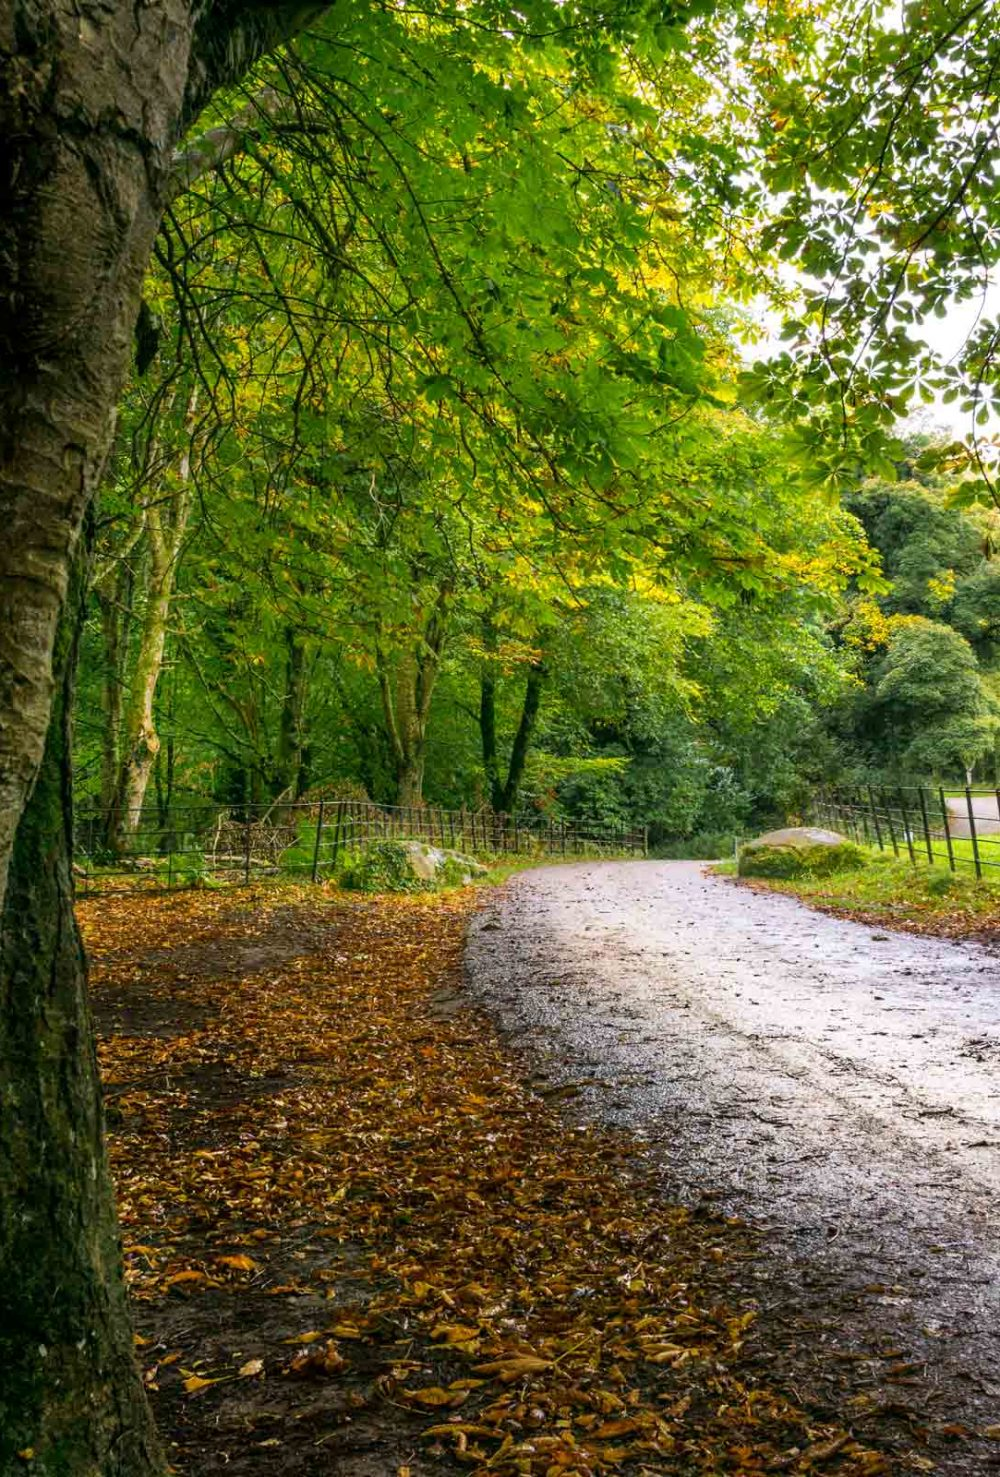 A walk in Killarney National Park leads you to quaint Irish roads.